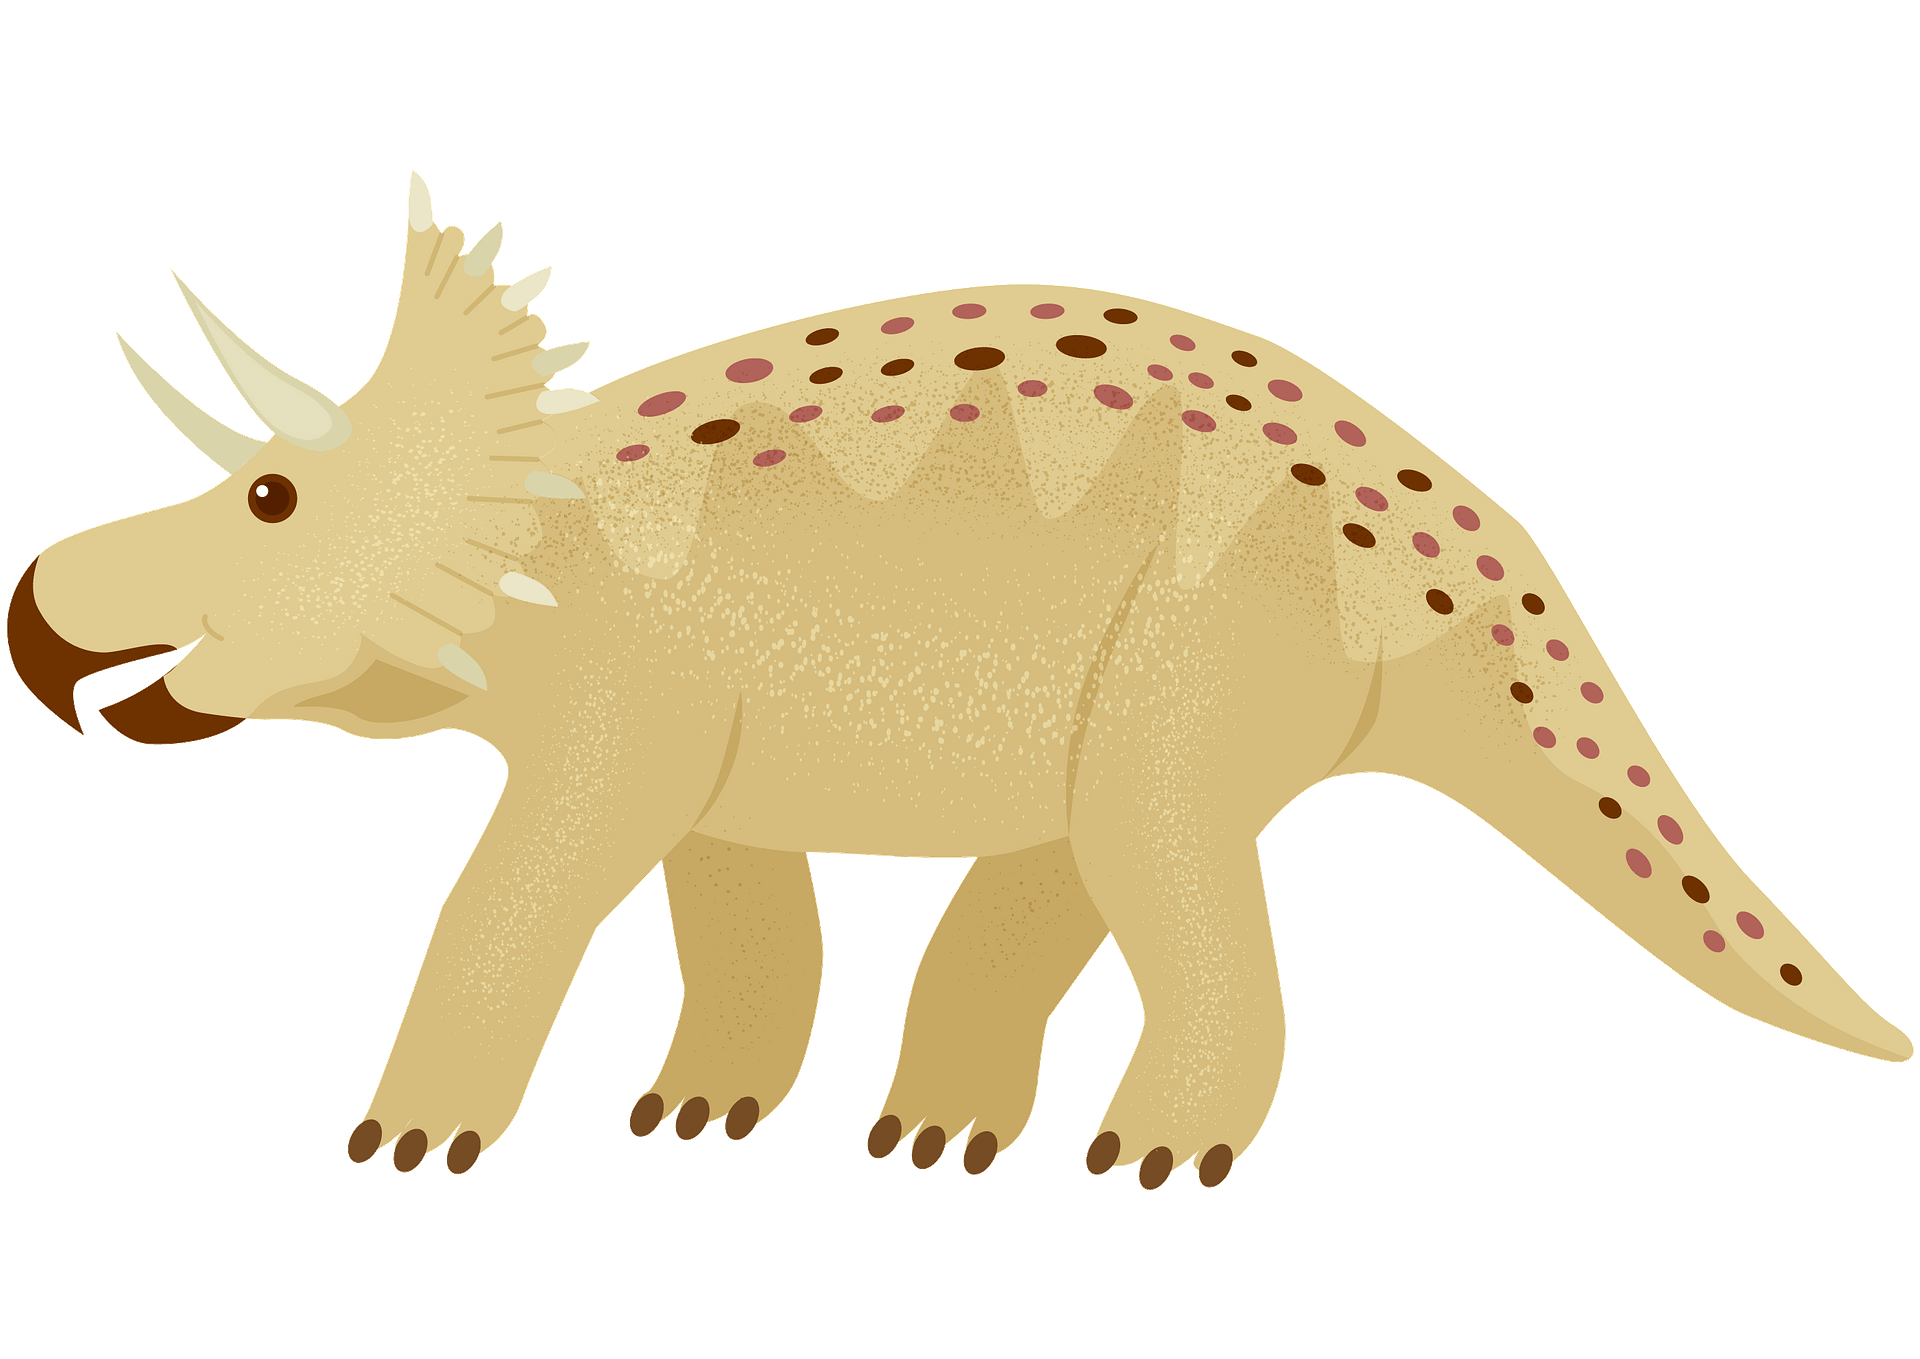 Horn Triceratops Stock Vector Illustration And Royalty Free Horn Triceratops  Clipart